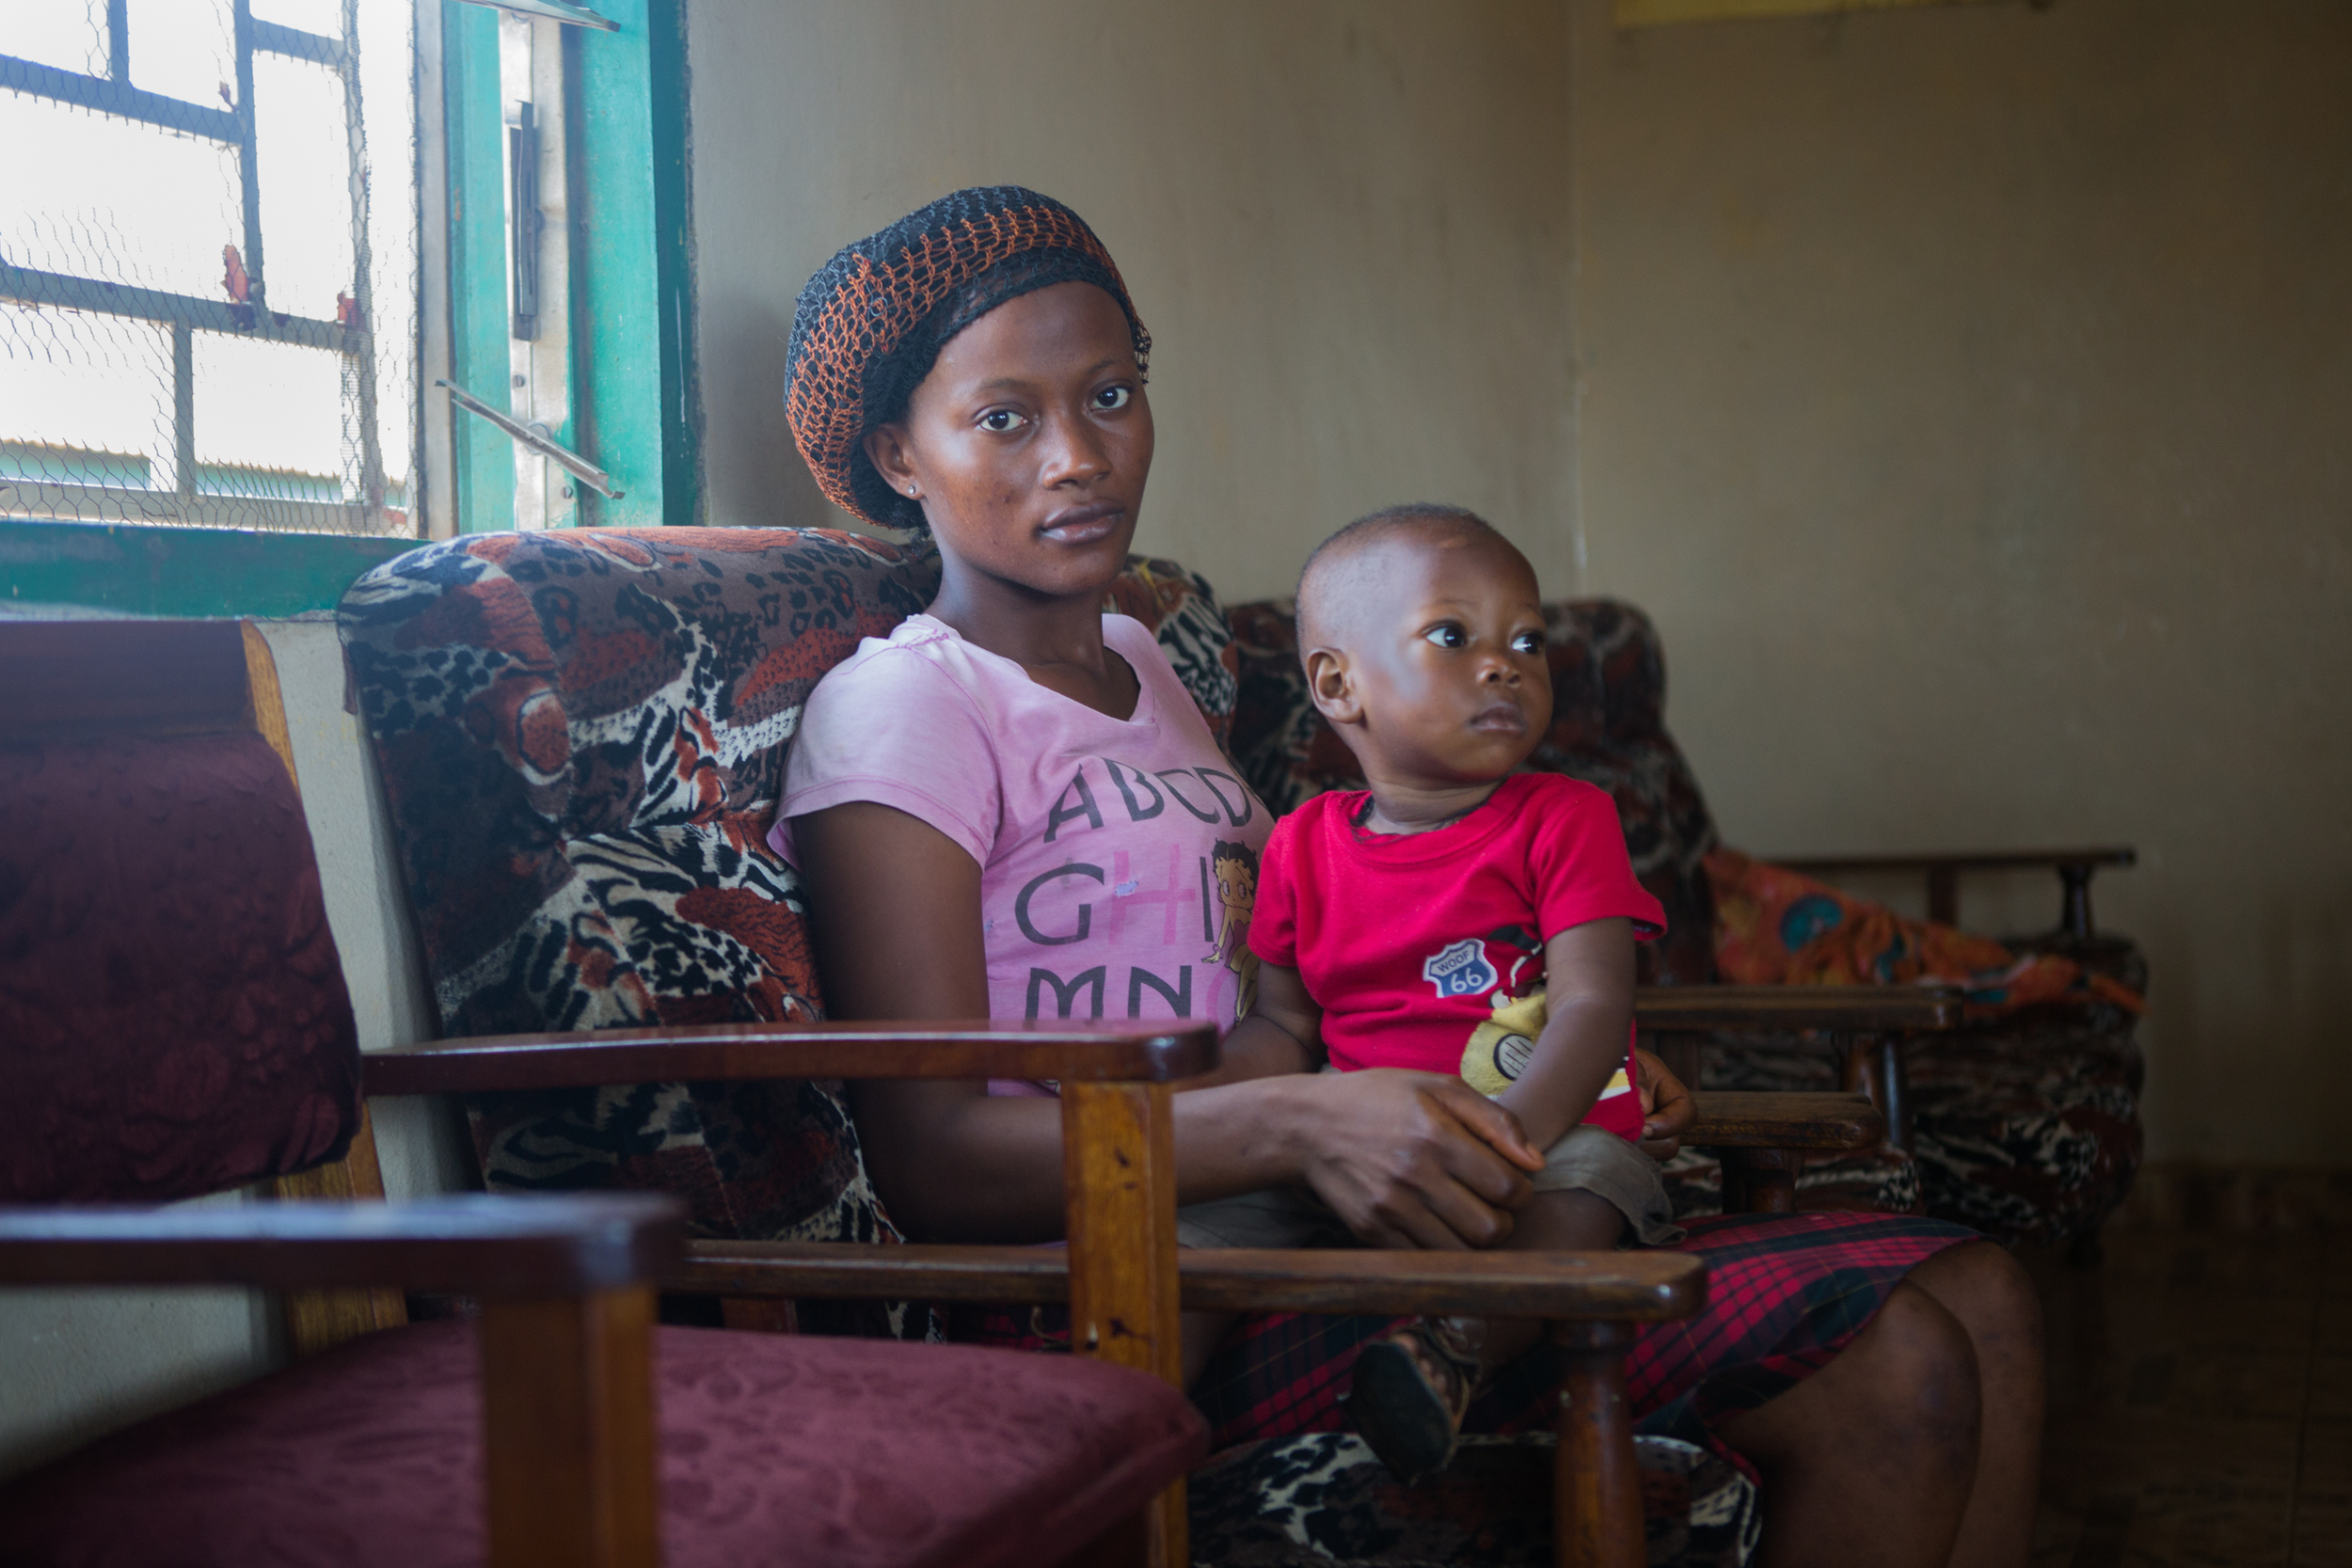 Alice, 18, and her son Mustafa, 1, sit in the waiting room before going to meet a social worker in Kissy, Sierra Leone on April 26, 2016. Alice's whole family perished during the Ebola Crisis in Sierra Leone in 2014, and around the same time she met a man who later abandoned her when she became pregnant. Since he left, she has abandoned her schooling and supports herself and her baby through odd jobs.